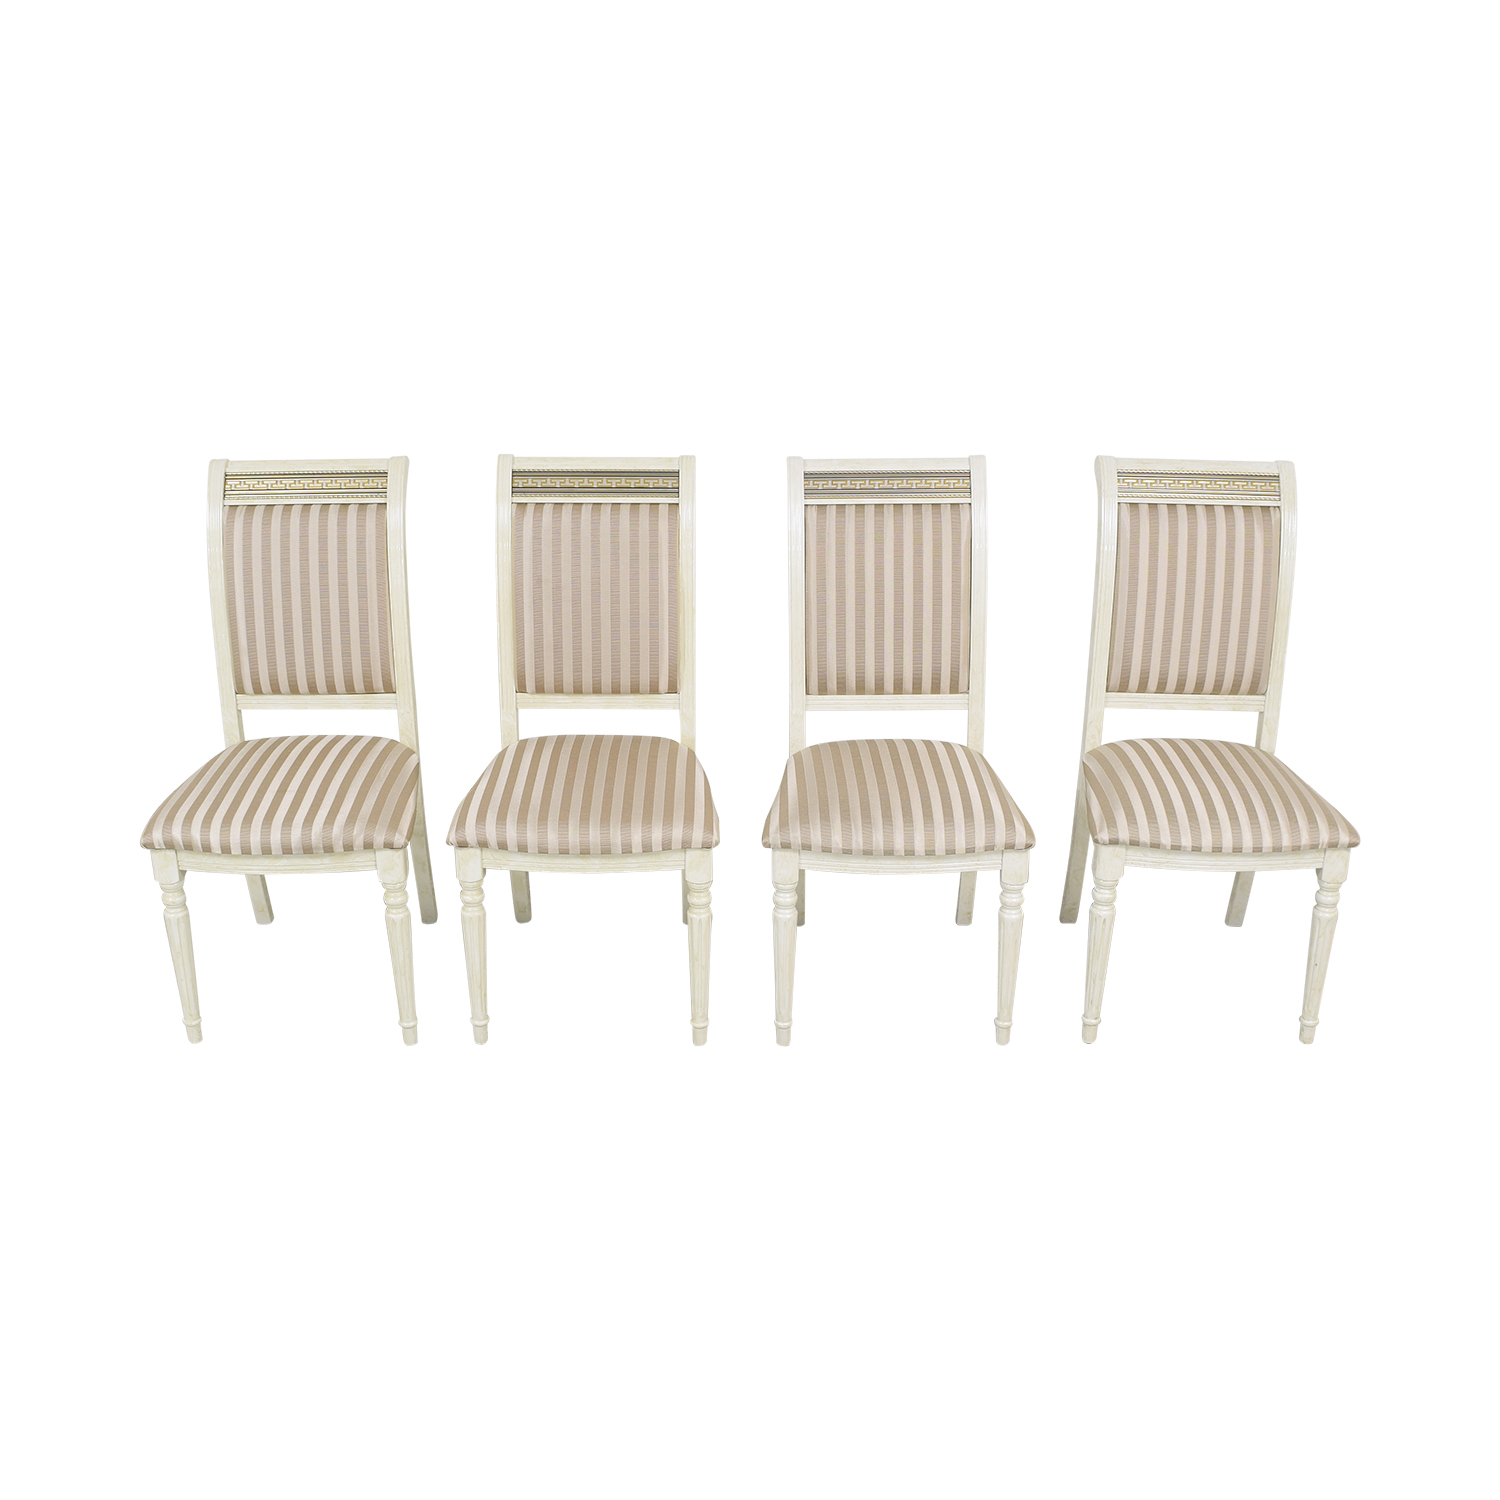 Arredoclassic Arredoclassic Liberty Dining Chairs second hand